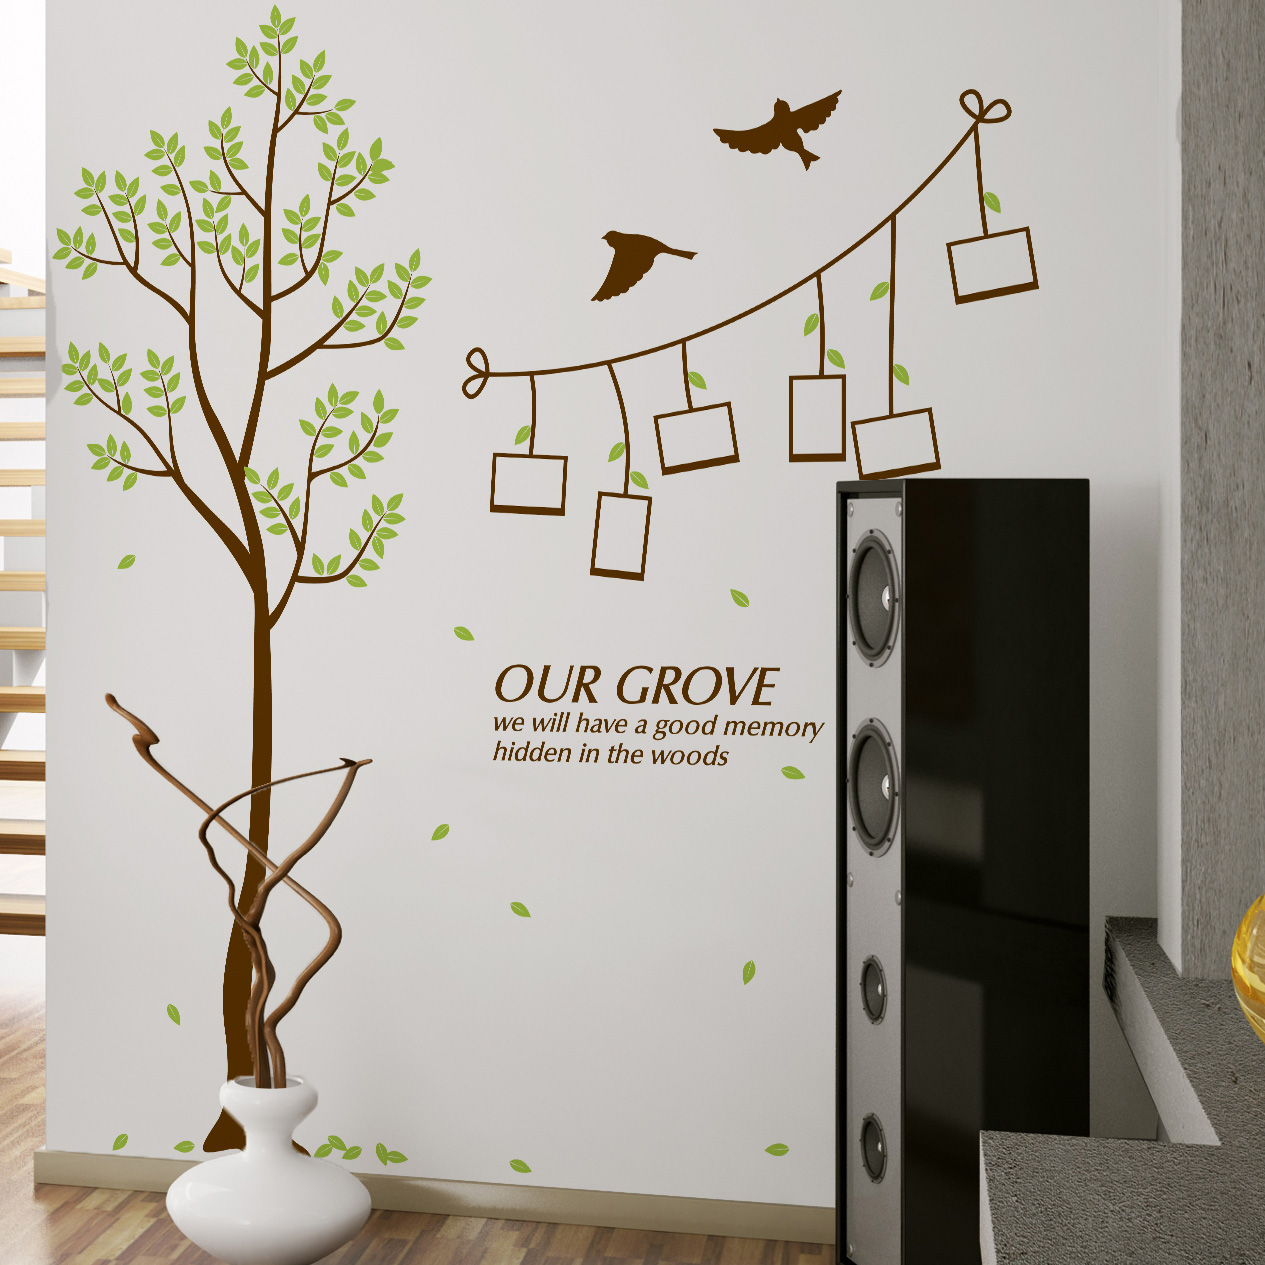 Removable small wood home decor photo wall stickers living room bedroom sofa tv backdrop stickers